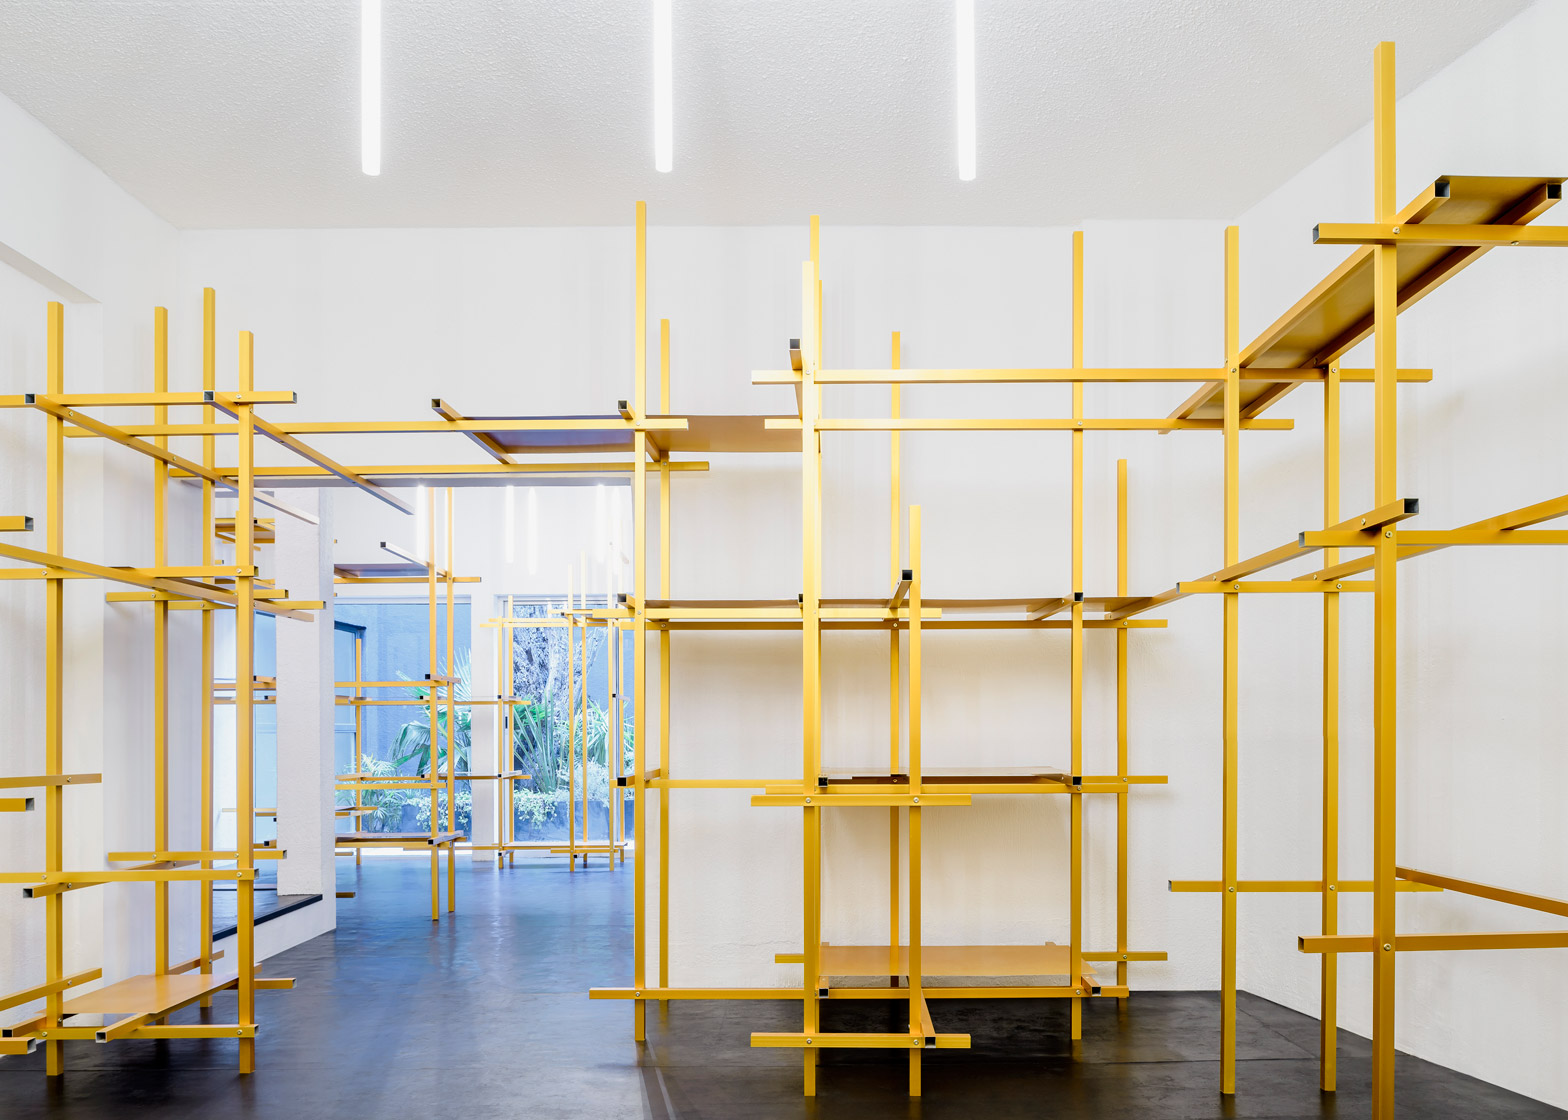 Troquer showroom by Zeller & Moye